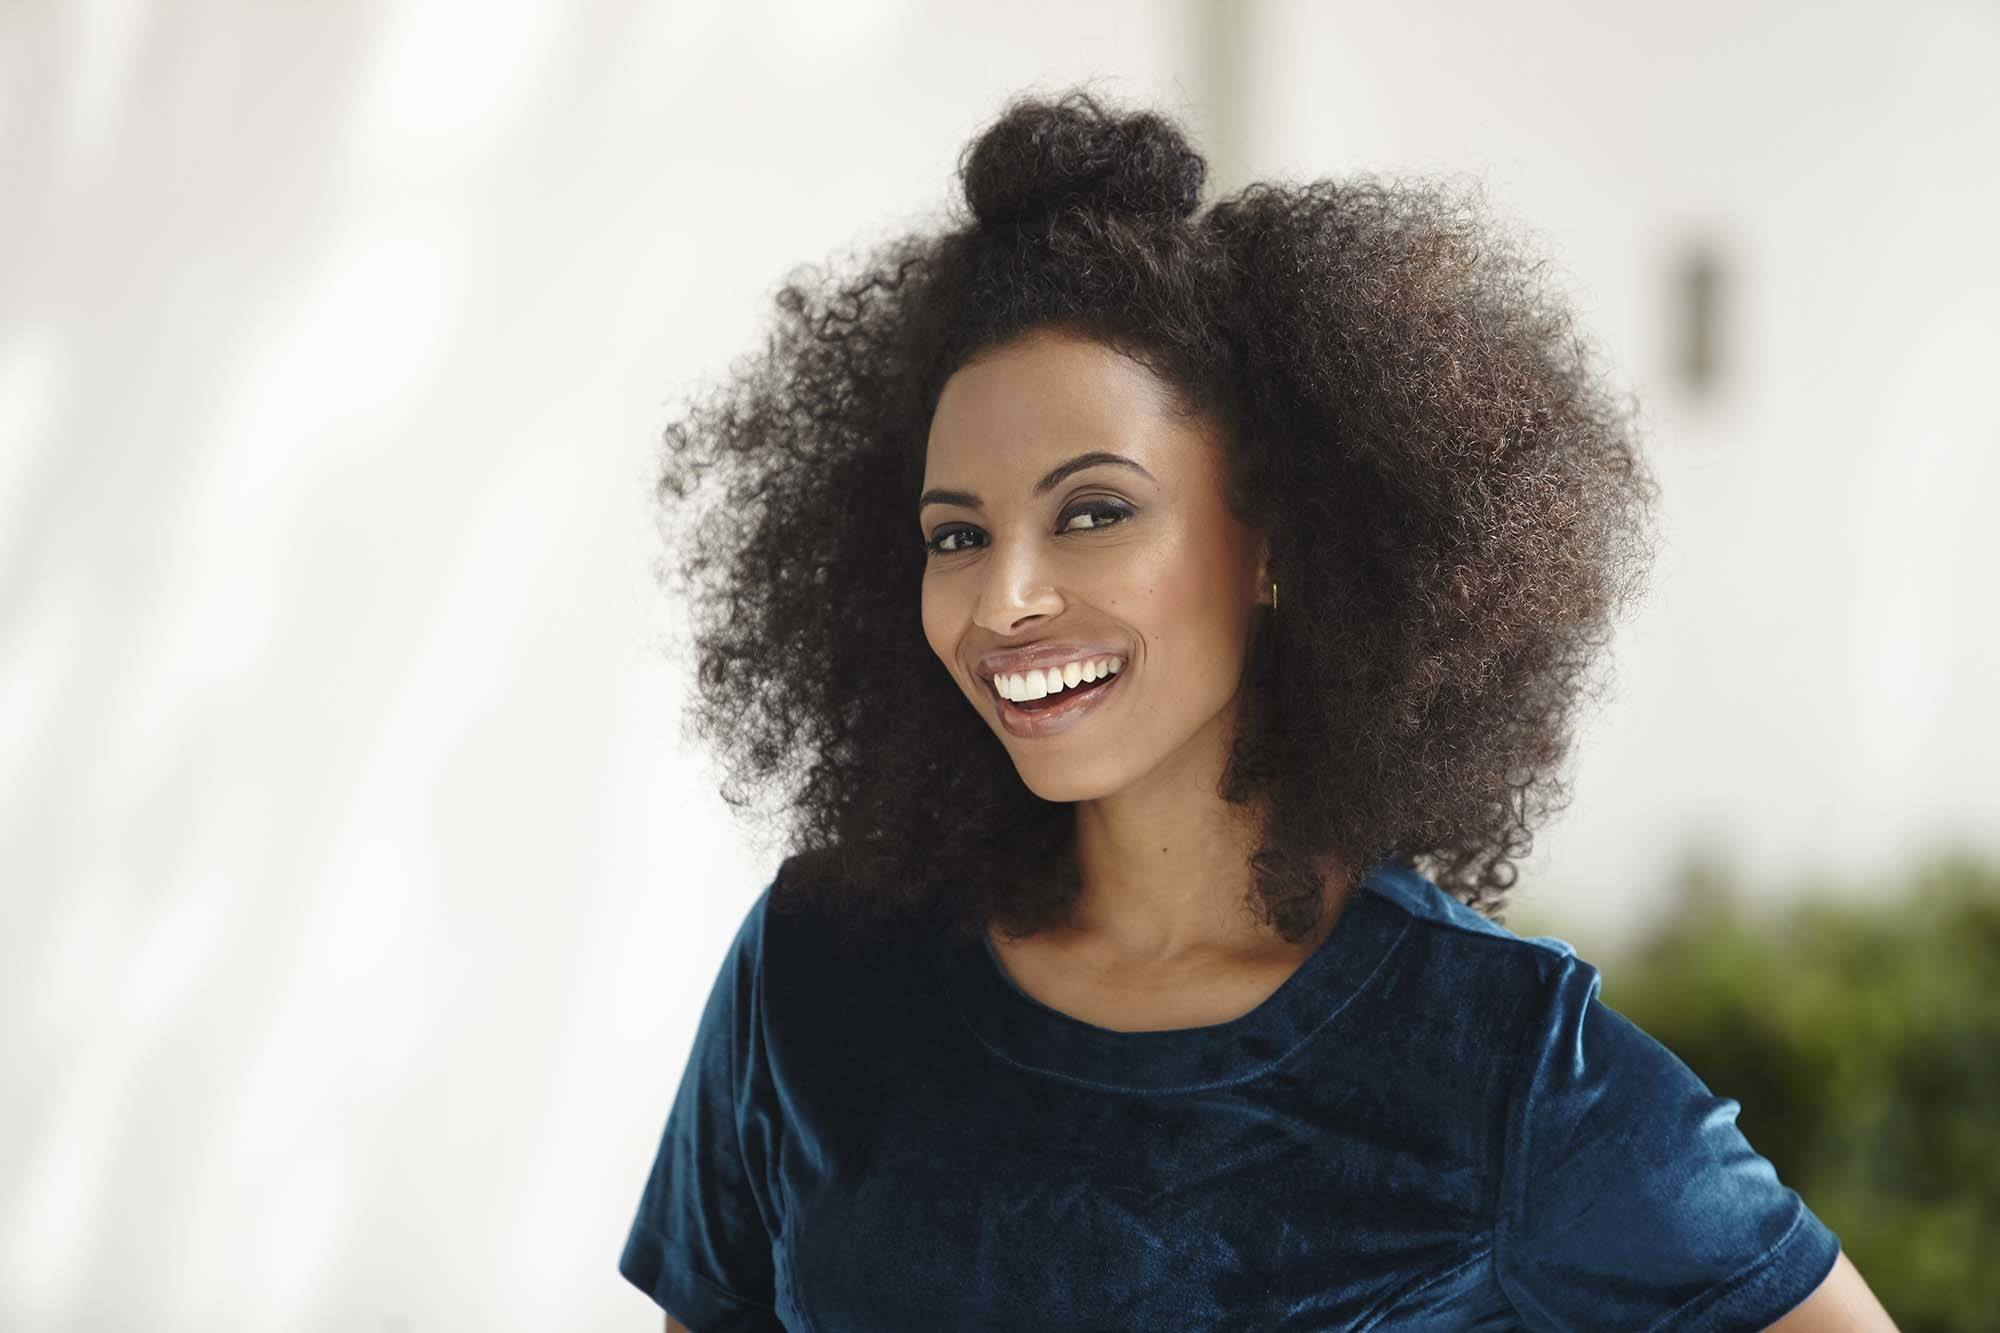 black hair afro styles afro hairstyles and hair trends plus afro hair styling tips 6356